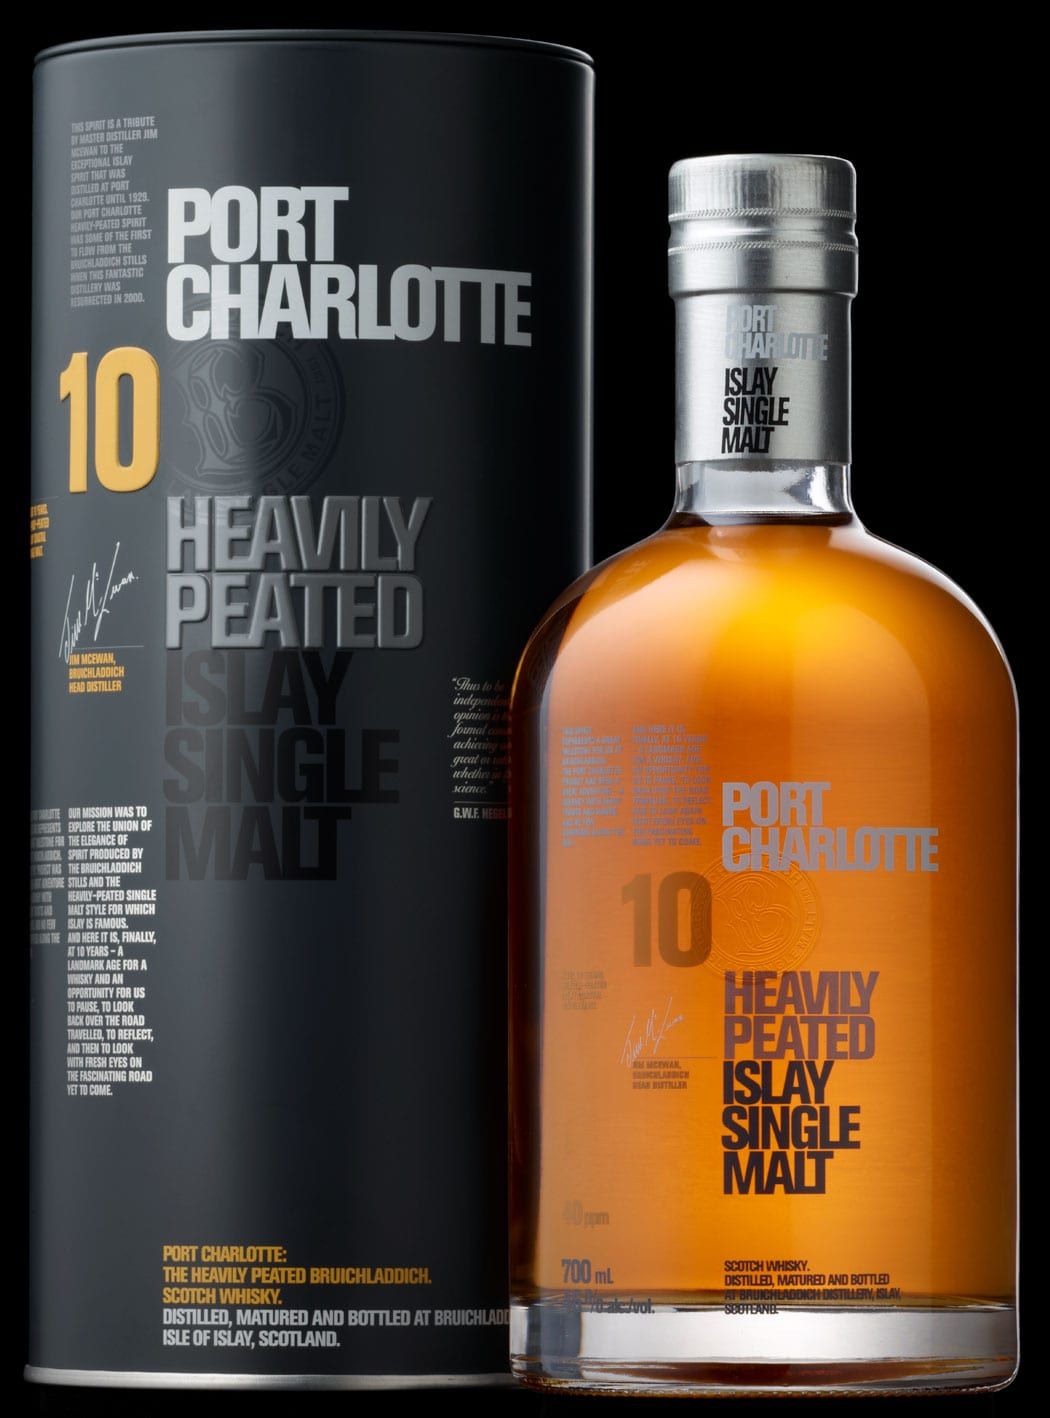 Port Charlotte 10 First limited edition